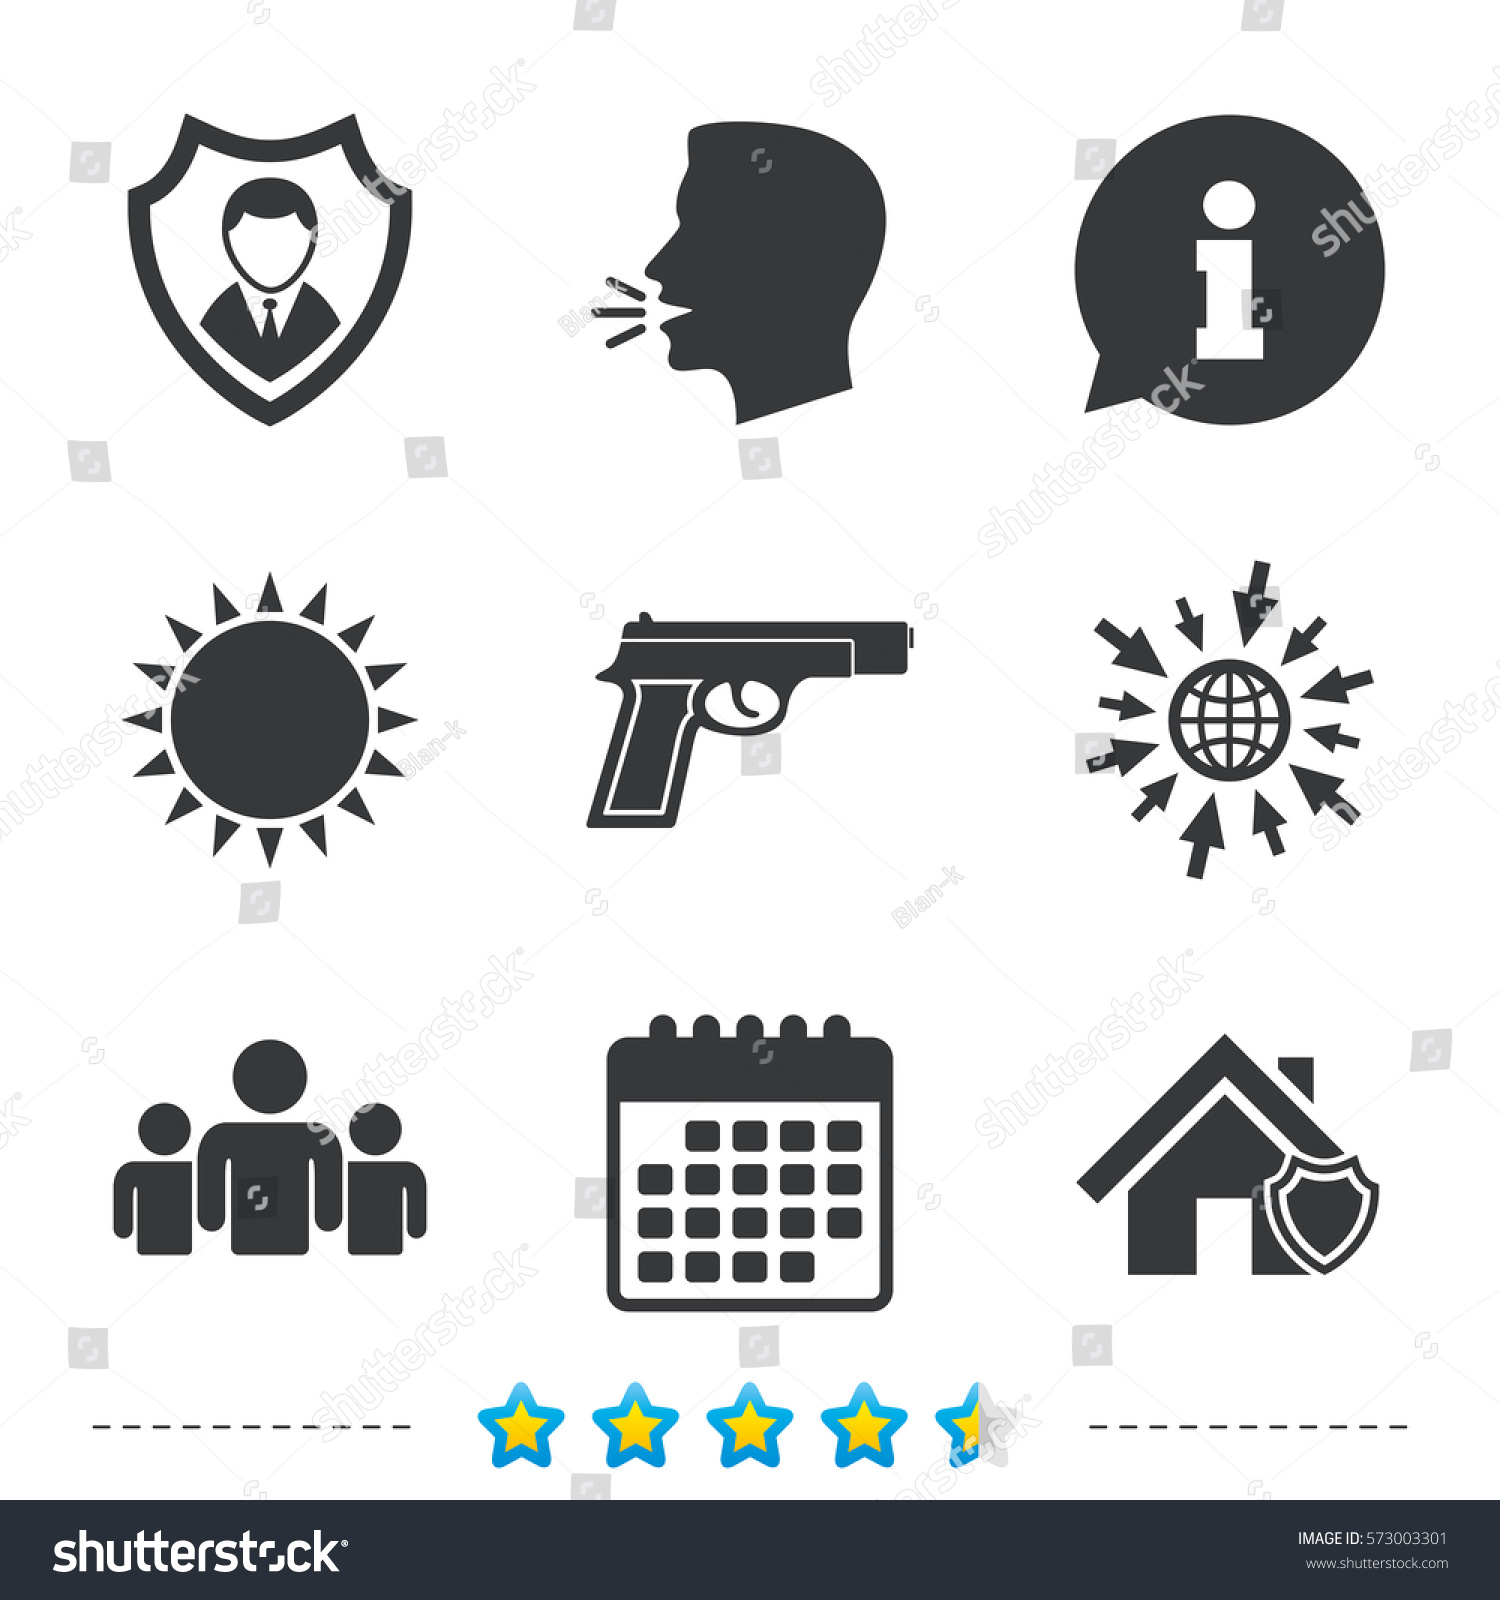 Security agency icons home shield protection stock vector home shield protection symbols gun weapon sign group of people buycottarizona